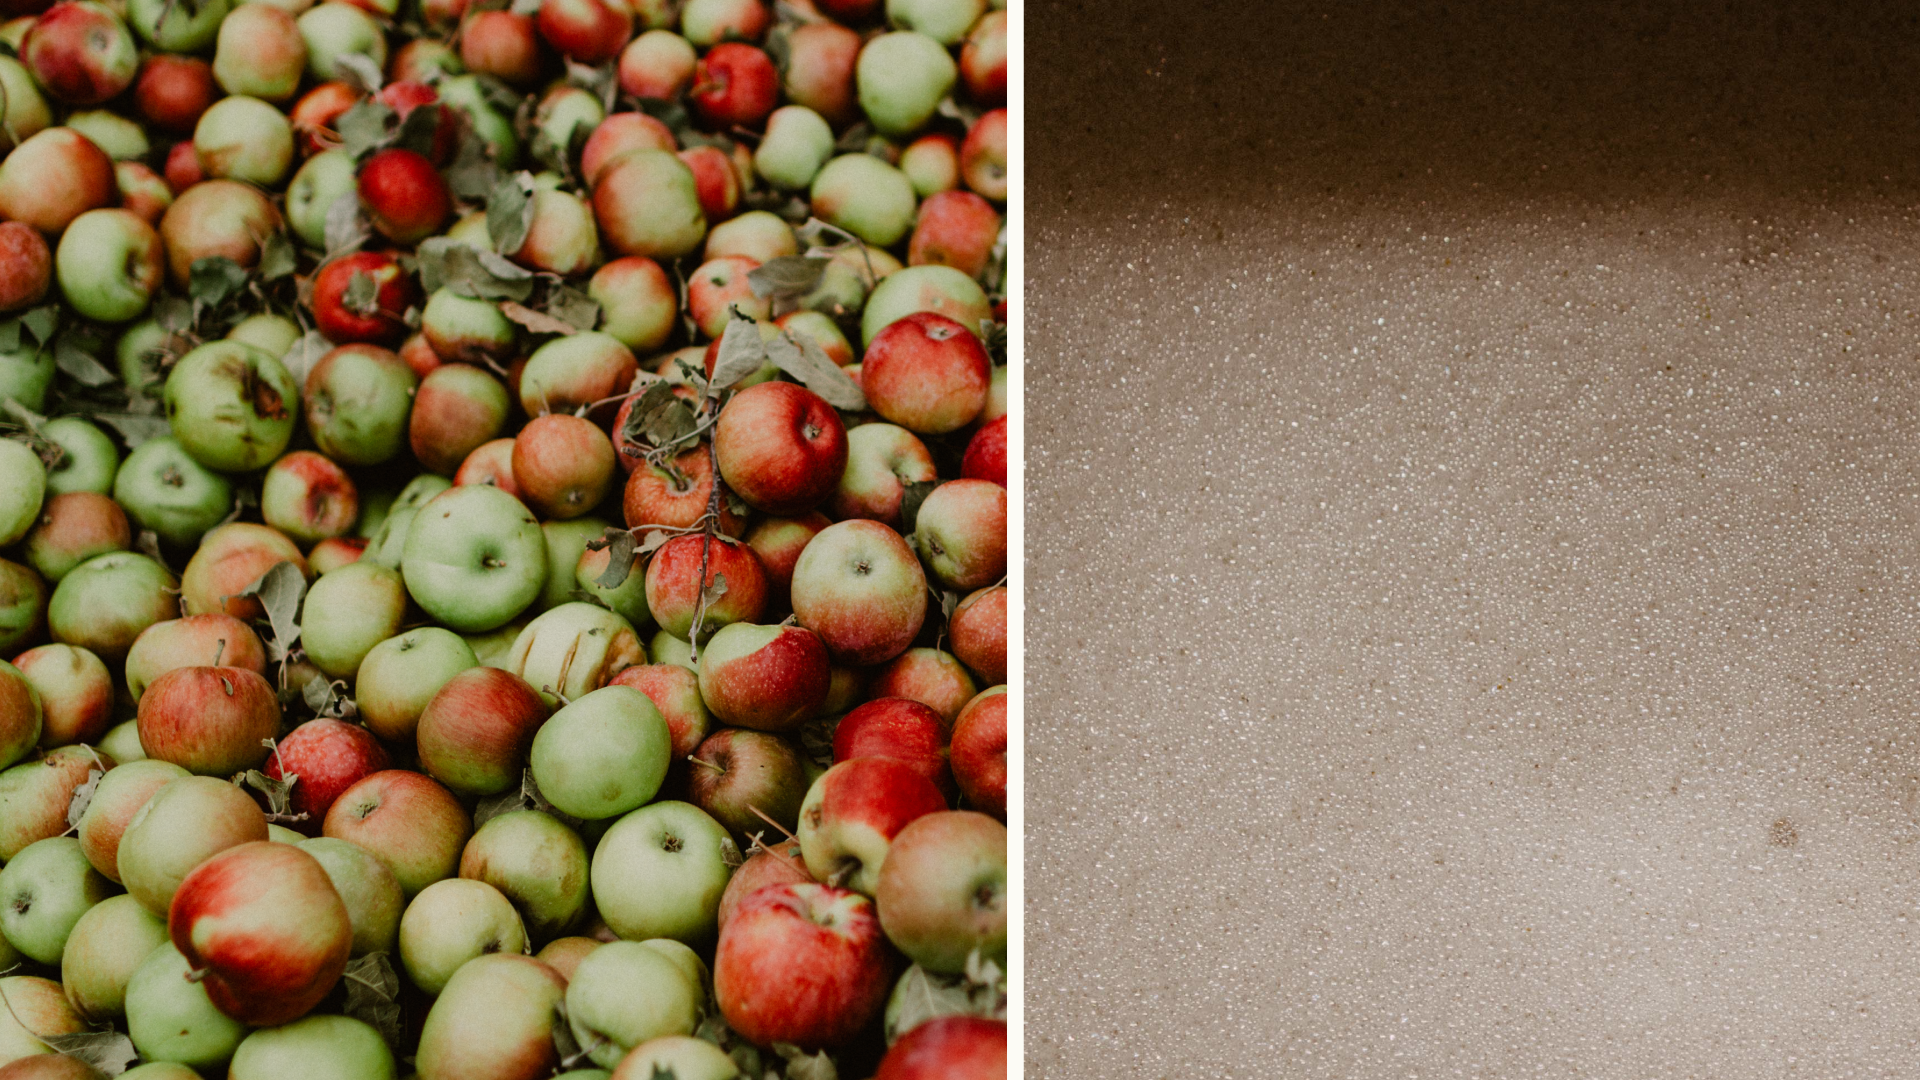 Apples are juiced and slowly fermented in stainless steel tanks.